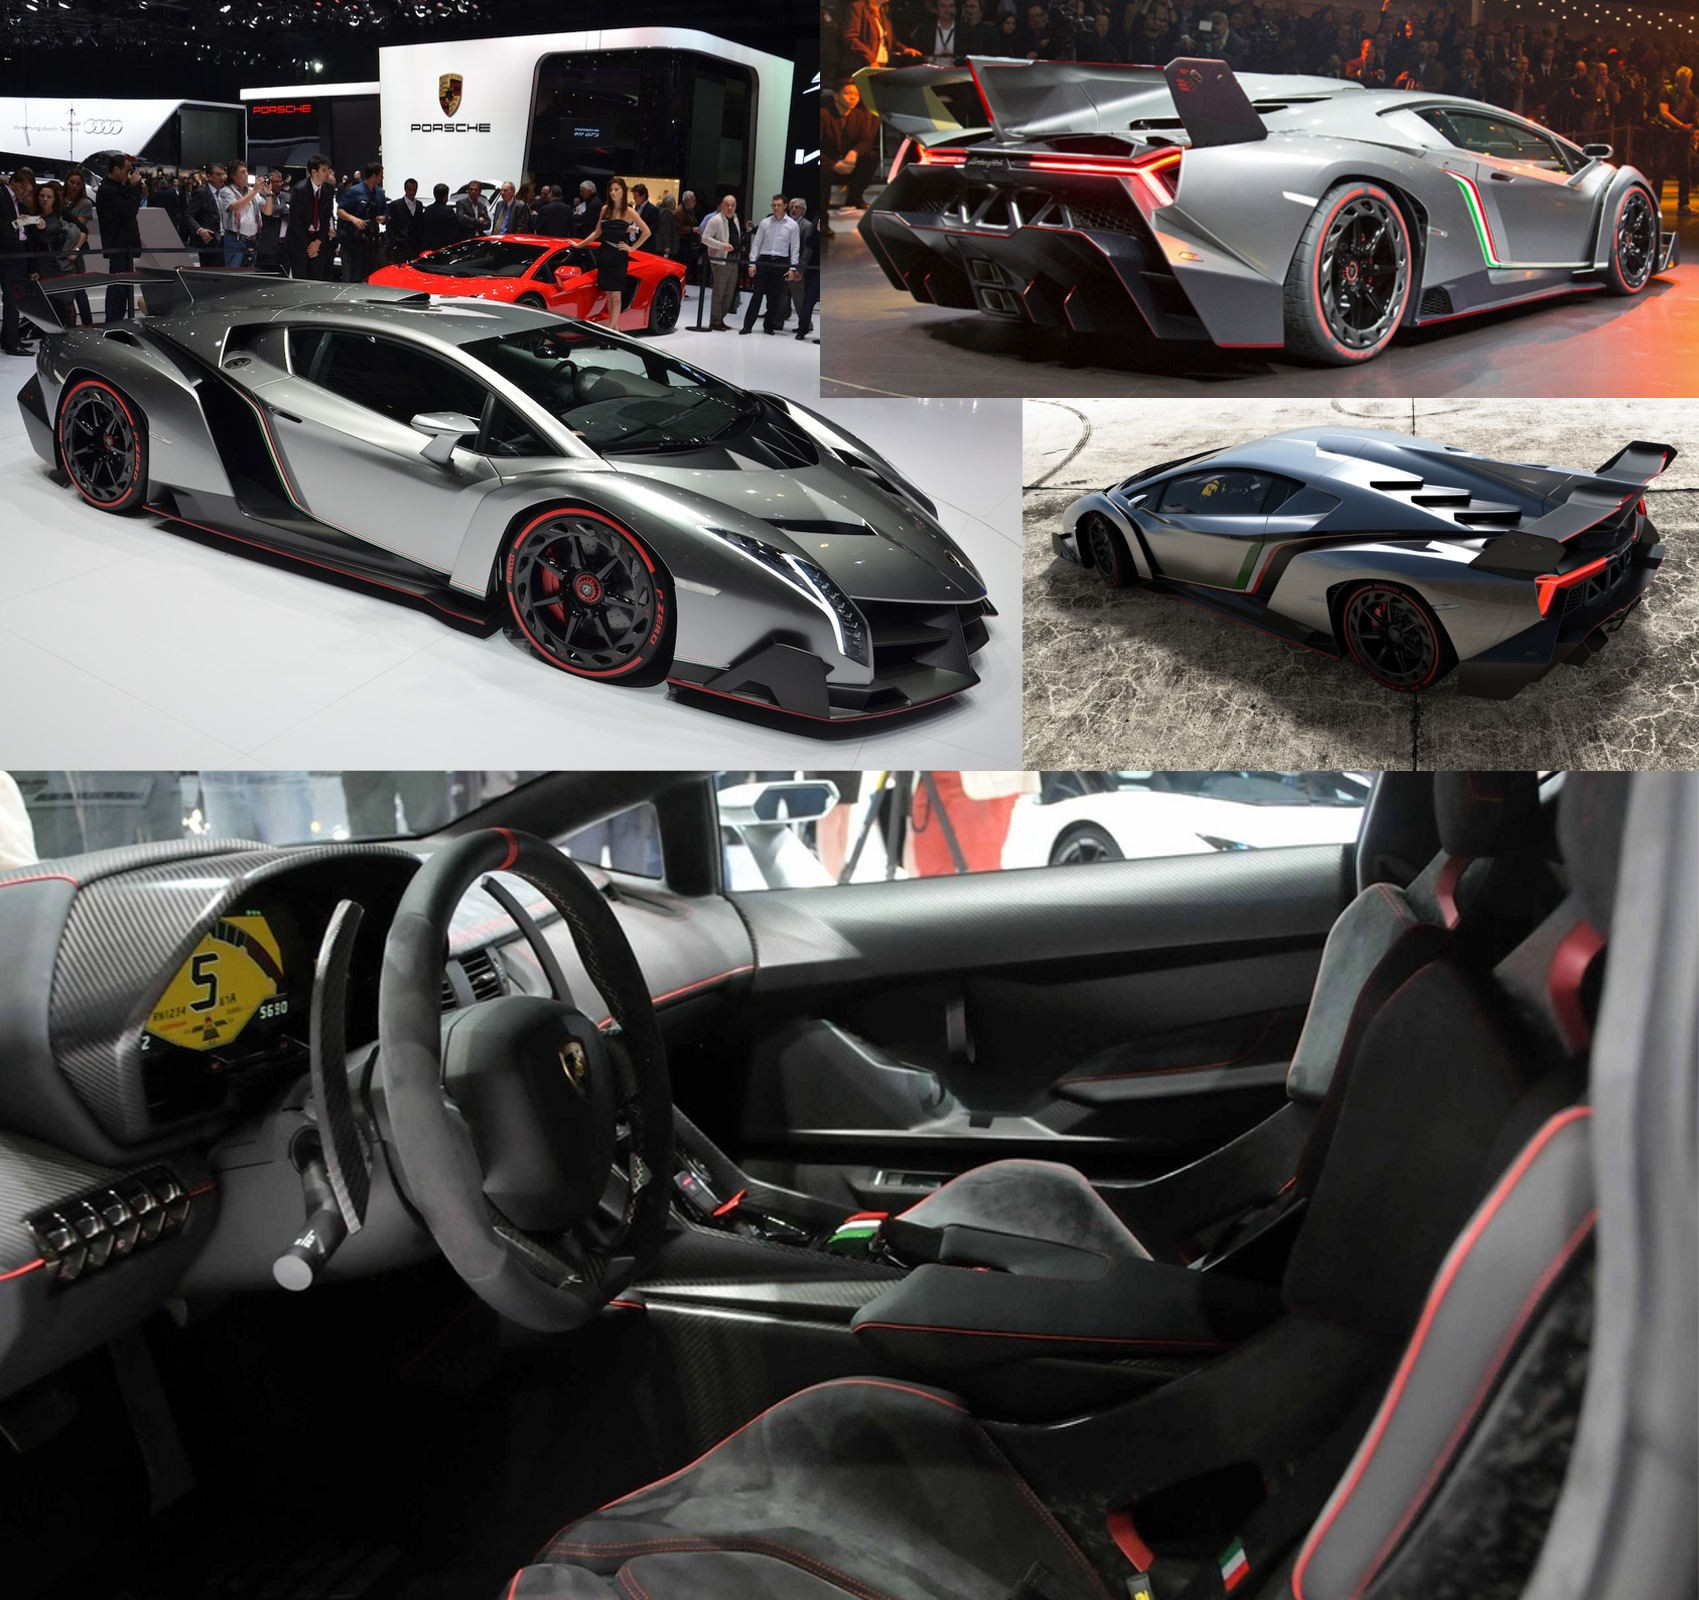 evaluation essay on a lamborghini car A sports car, or sportscar, is a small  some high-performance sports car manufacturers, such as ferrari and lamborghini have preferred this layout.